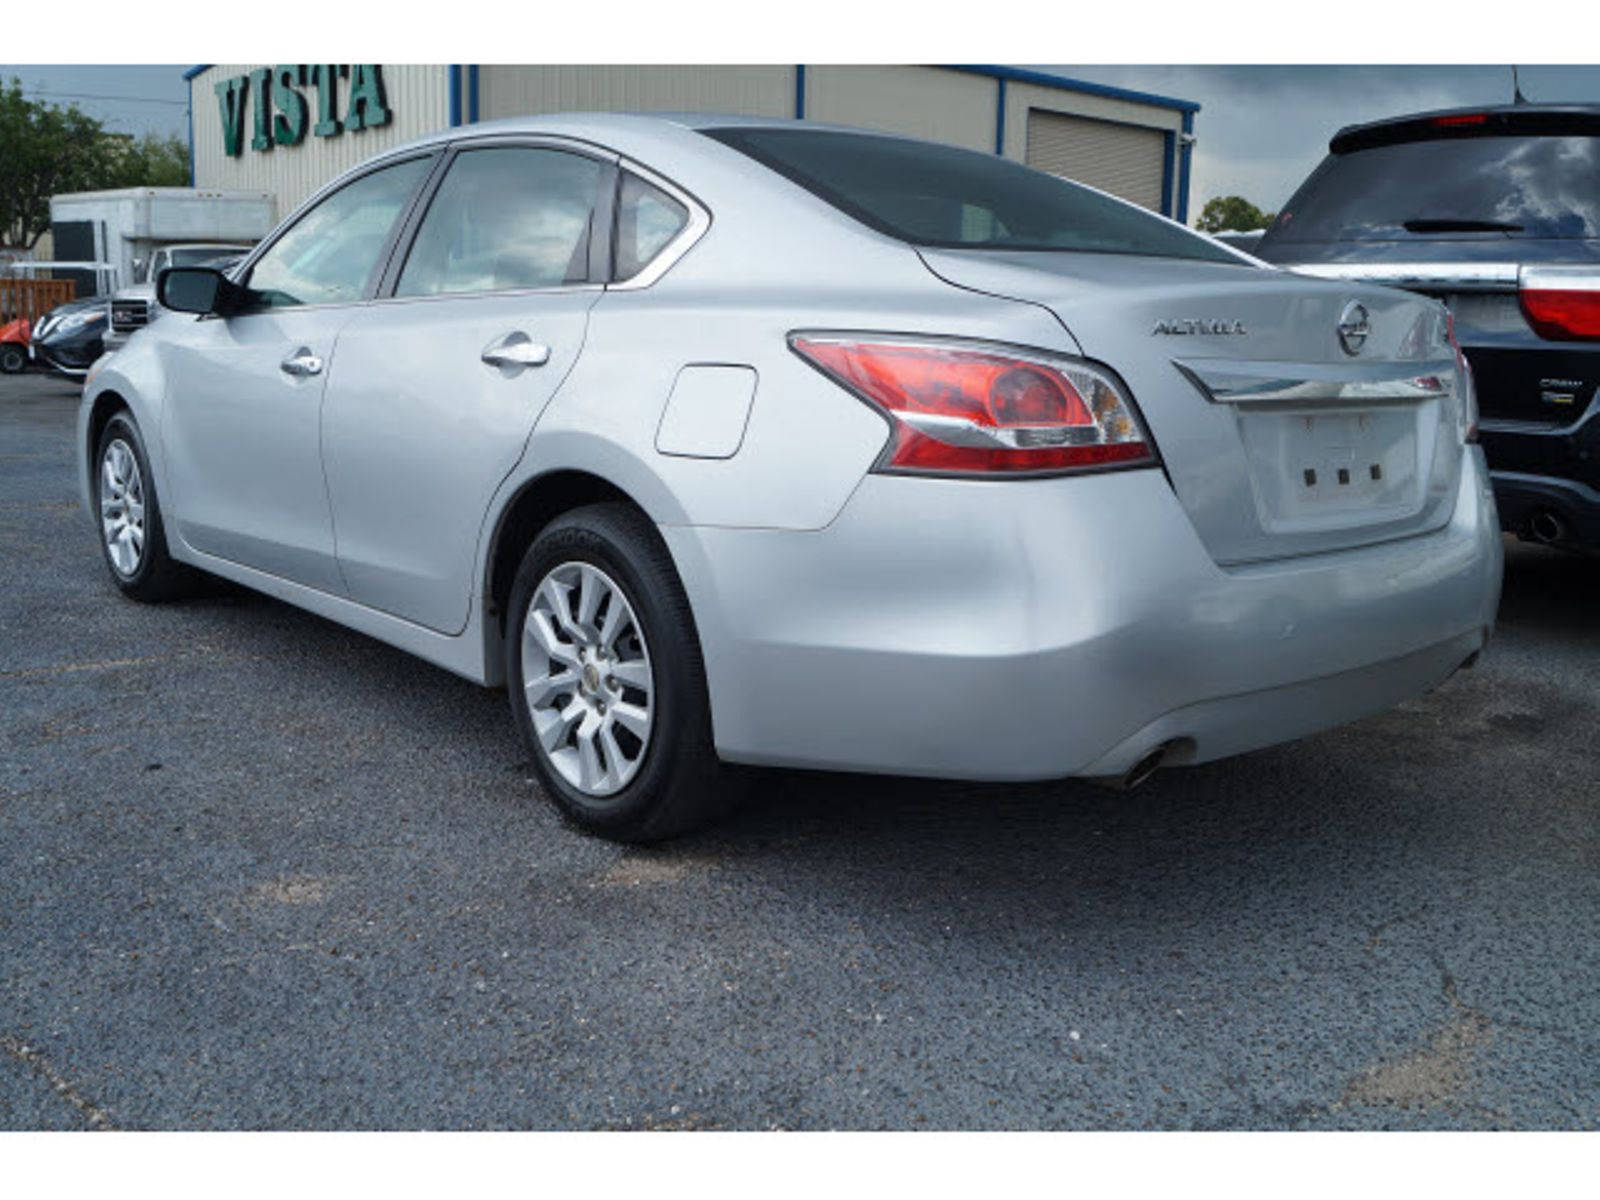 2015 nissan altima 25 s city texas vista cars and trucks 2015 nissan altima interior lights